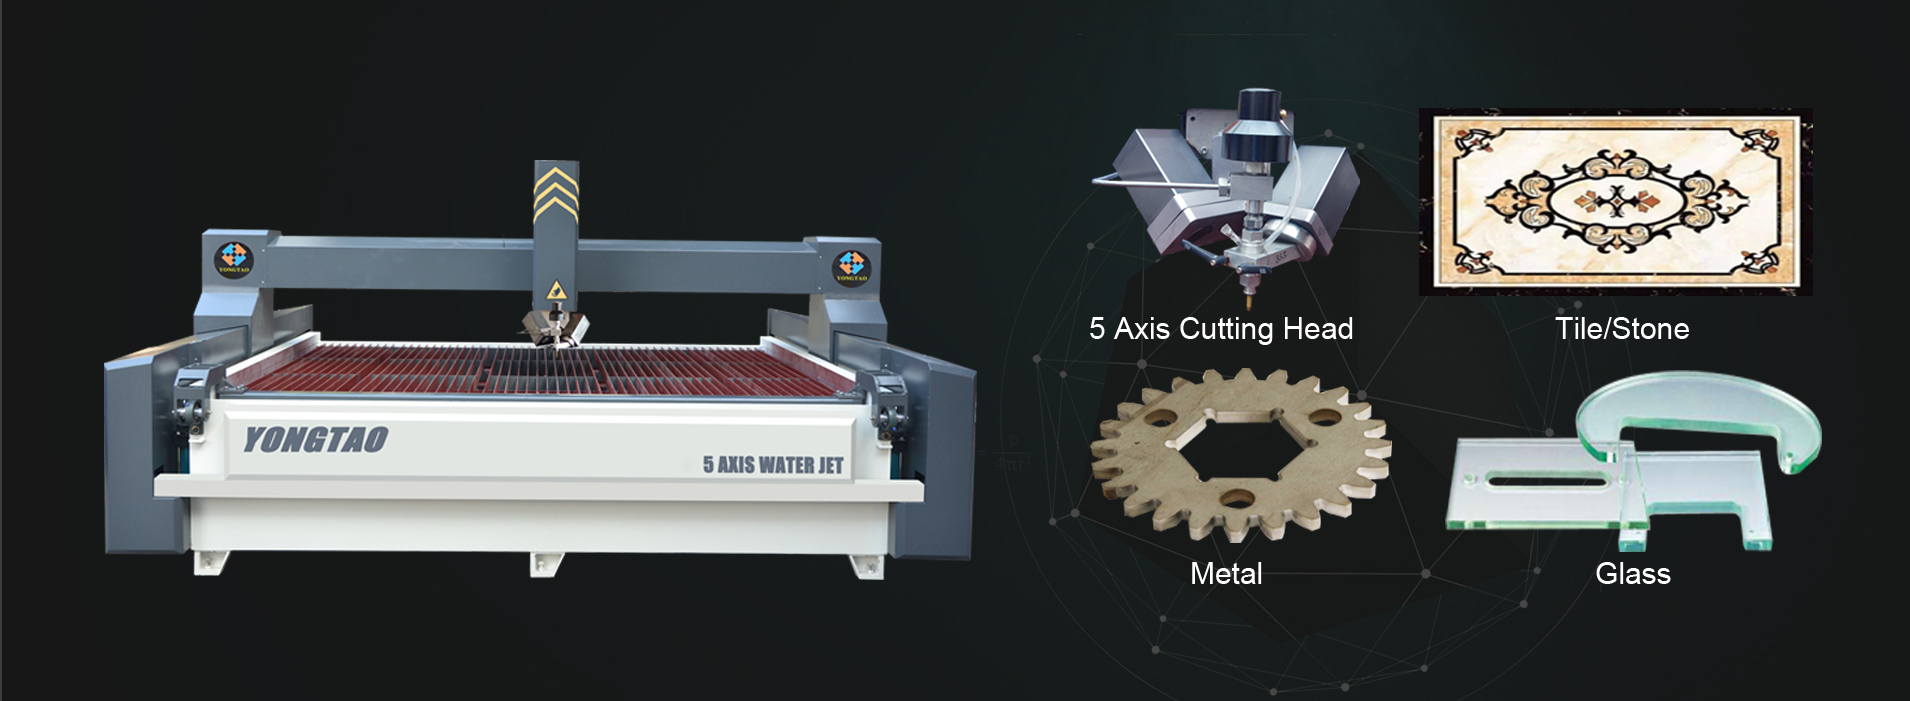 Cutting for metal, glass, tile, stones, plastic, wooden, etc.